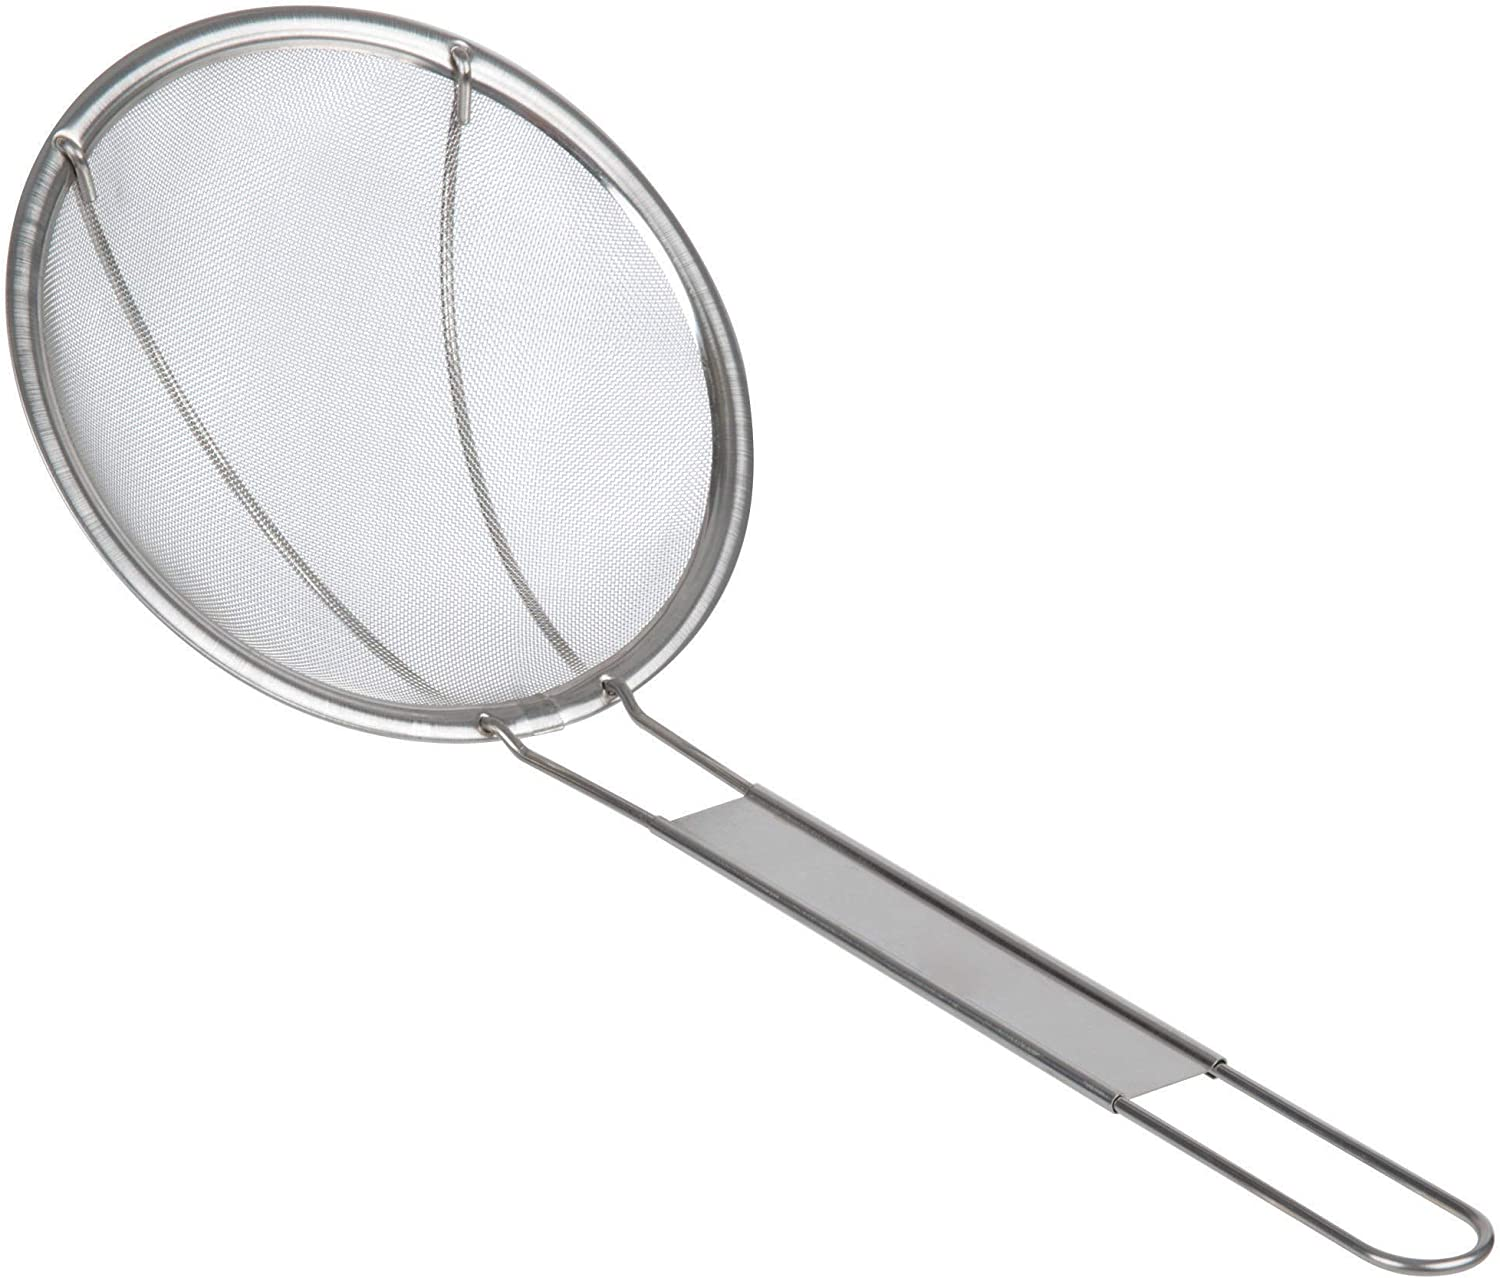 Sunrise Stainless Steel Round Skimmer Inventory cleanup selling sale or Crumbs Cleaning Charlotte Mall Sma for